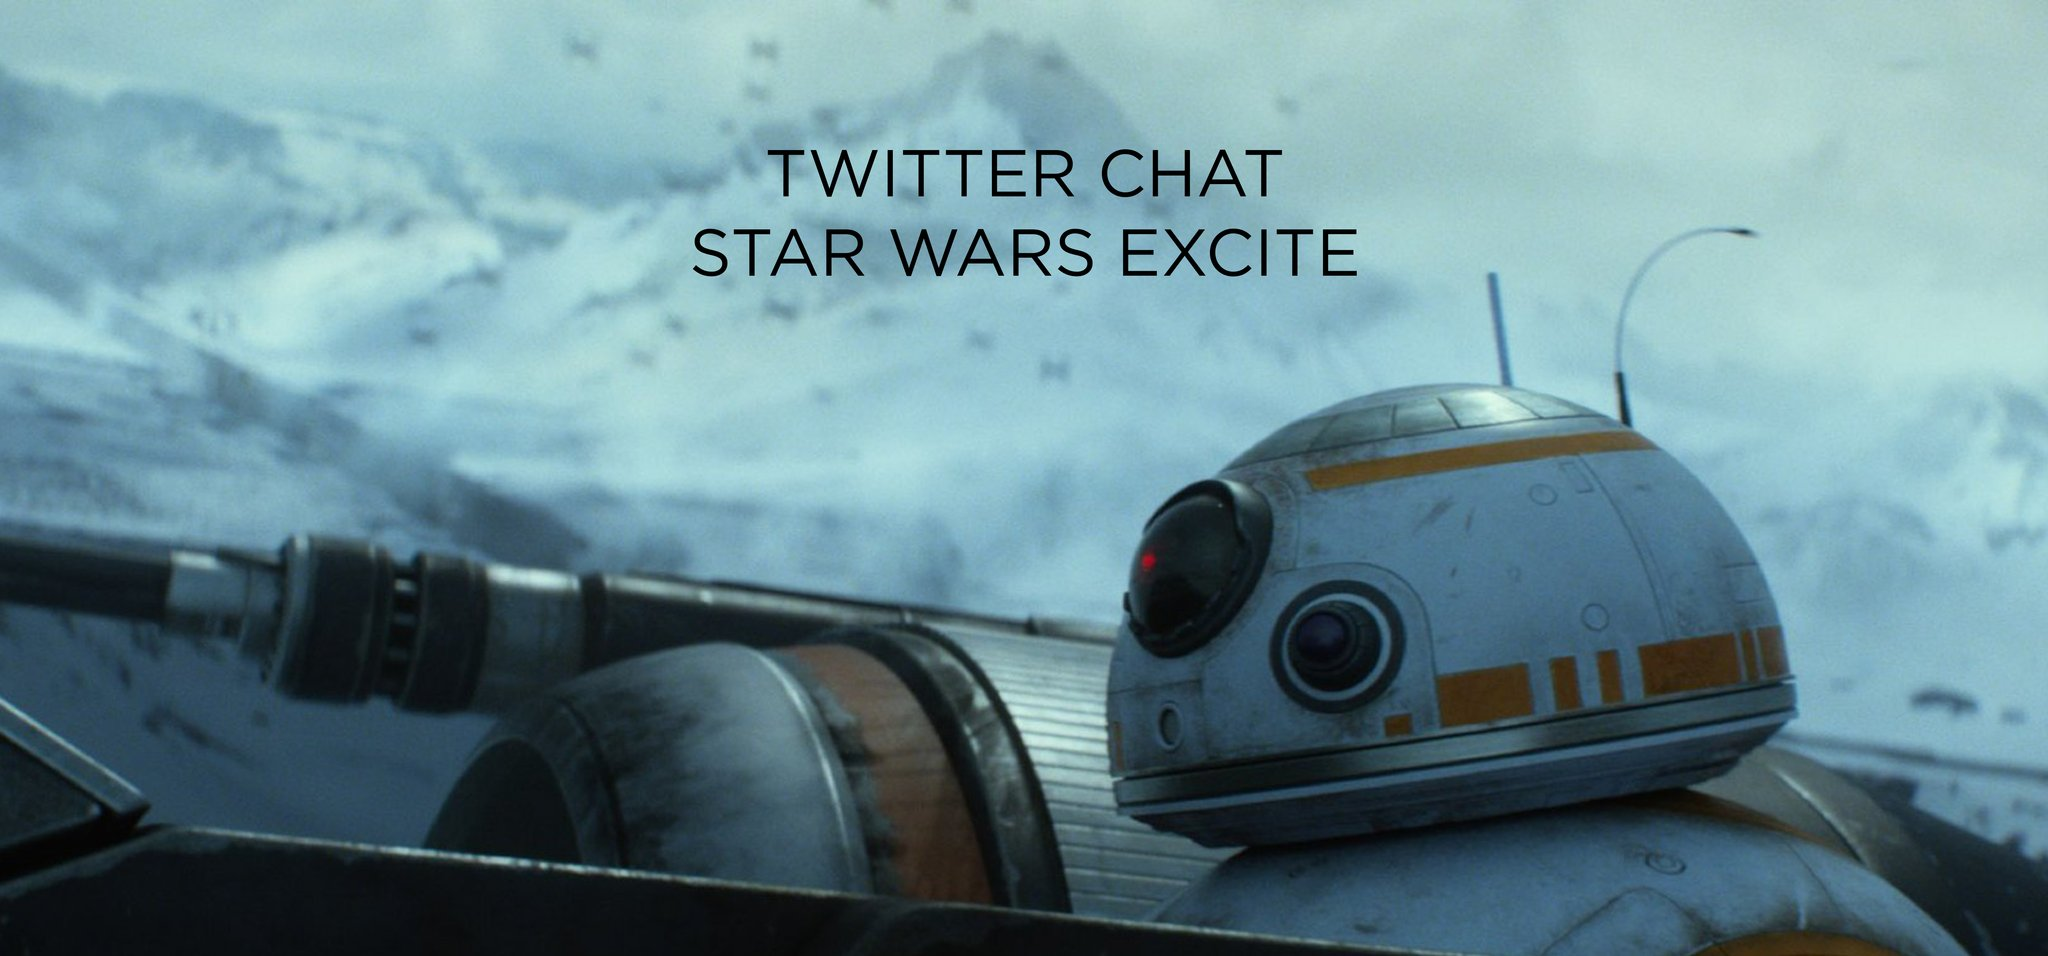 Twitter Chat: Star Wars Excite